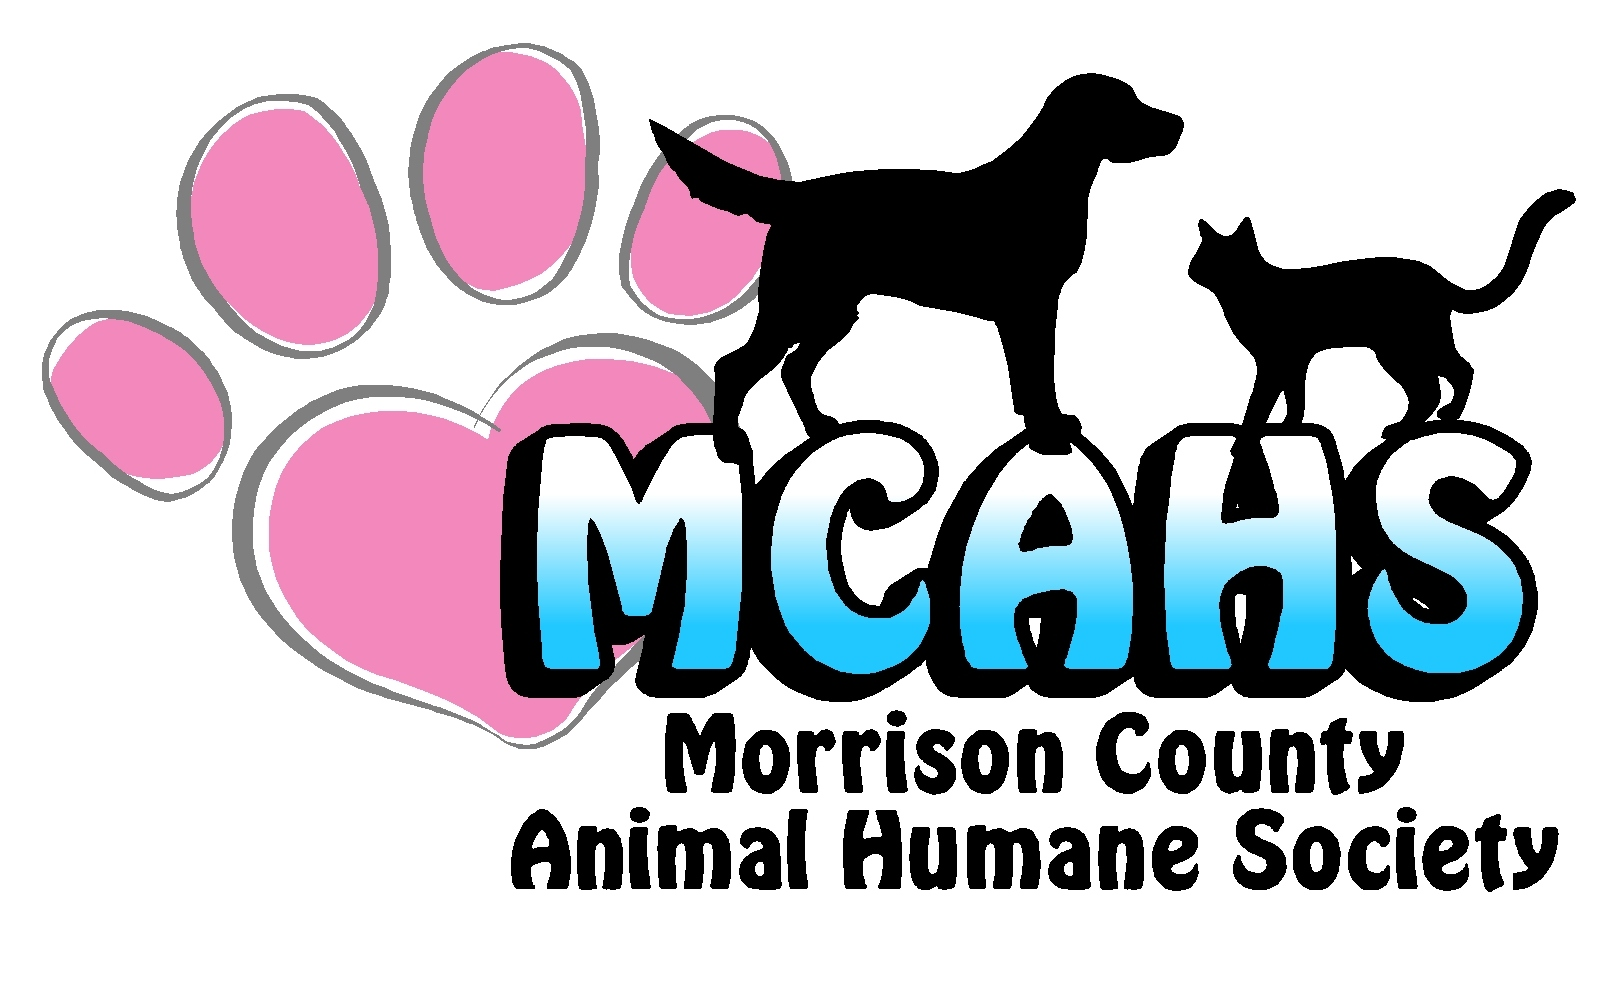 Morrison County Animal Humane Society